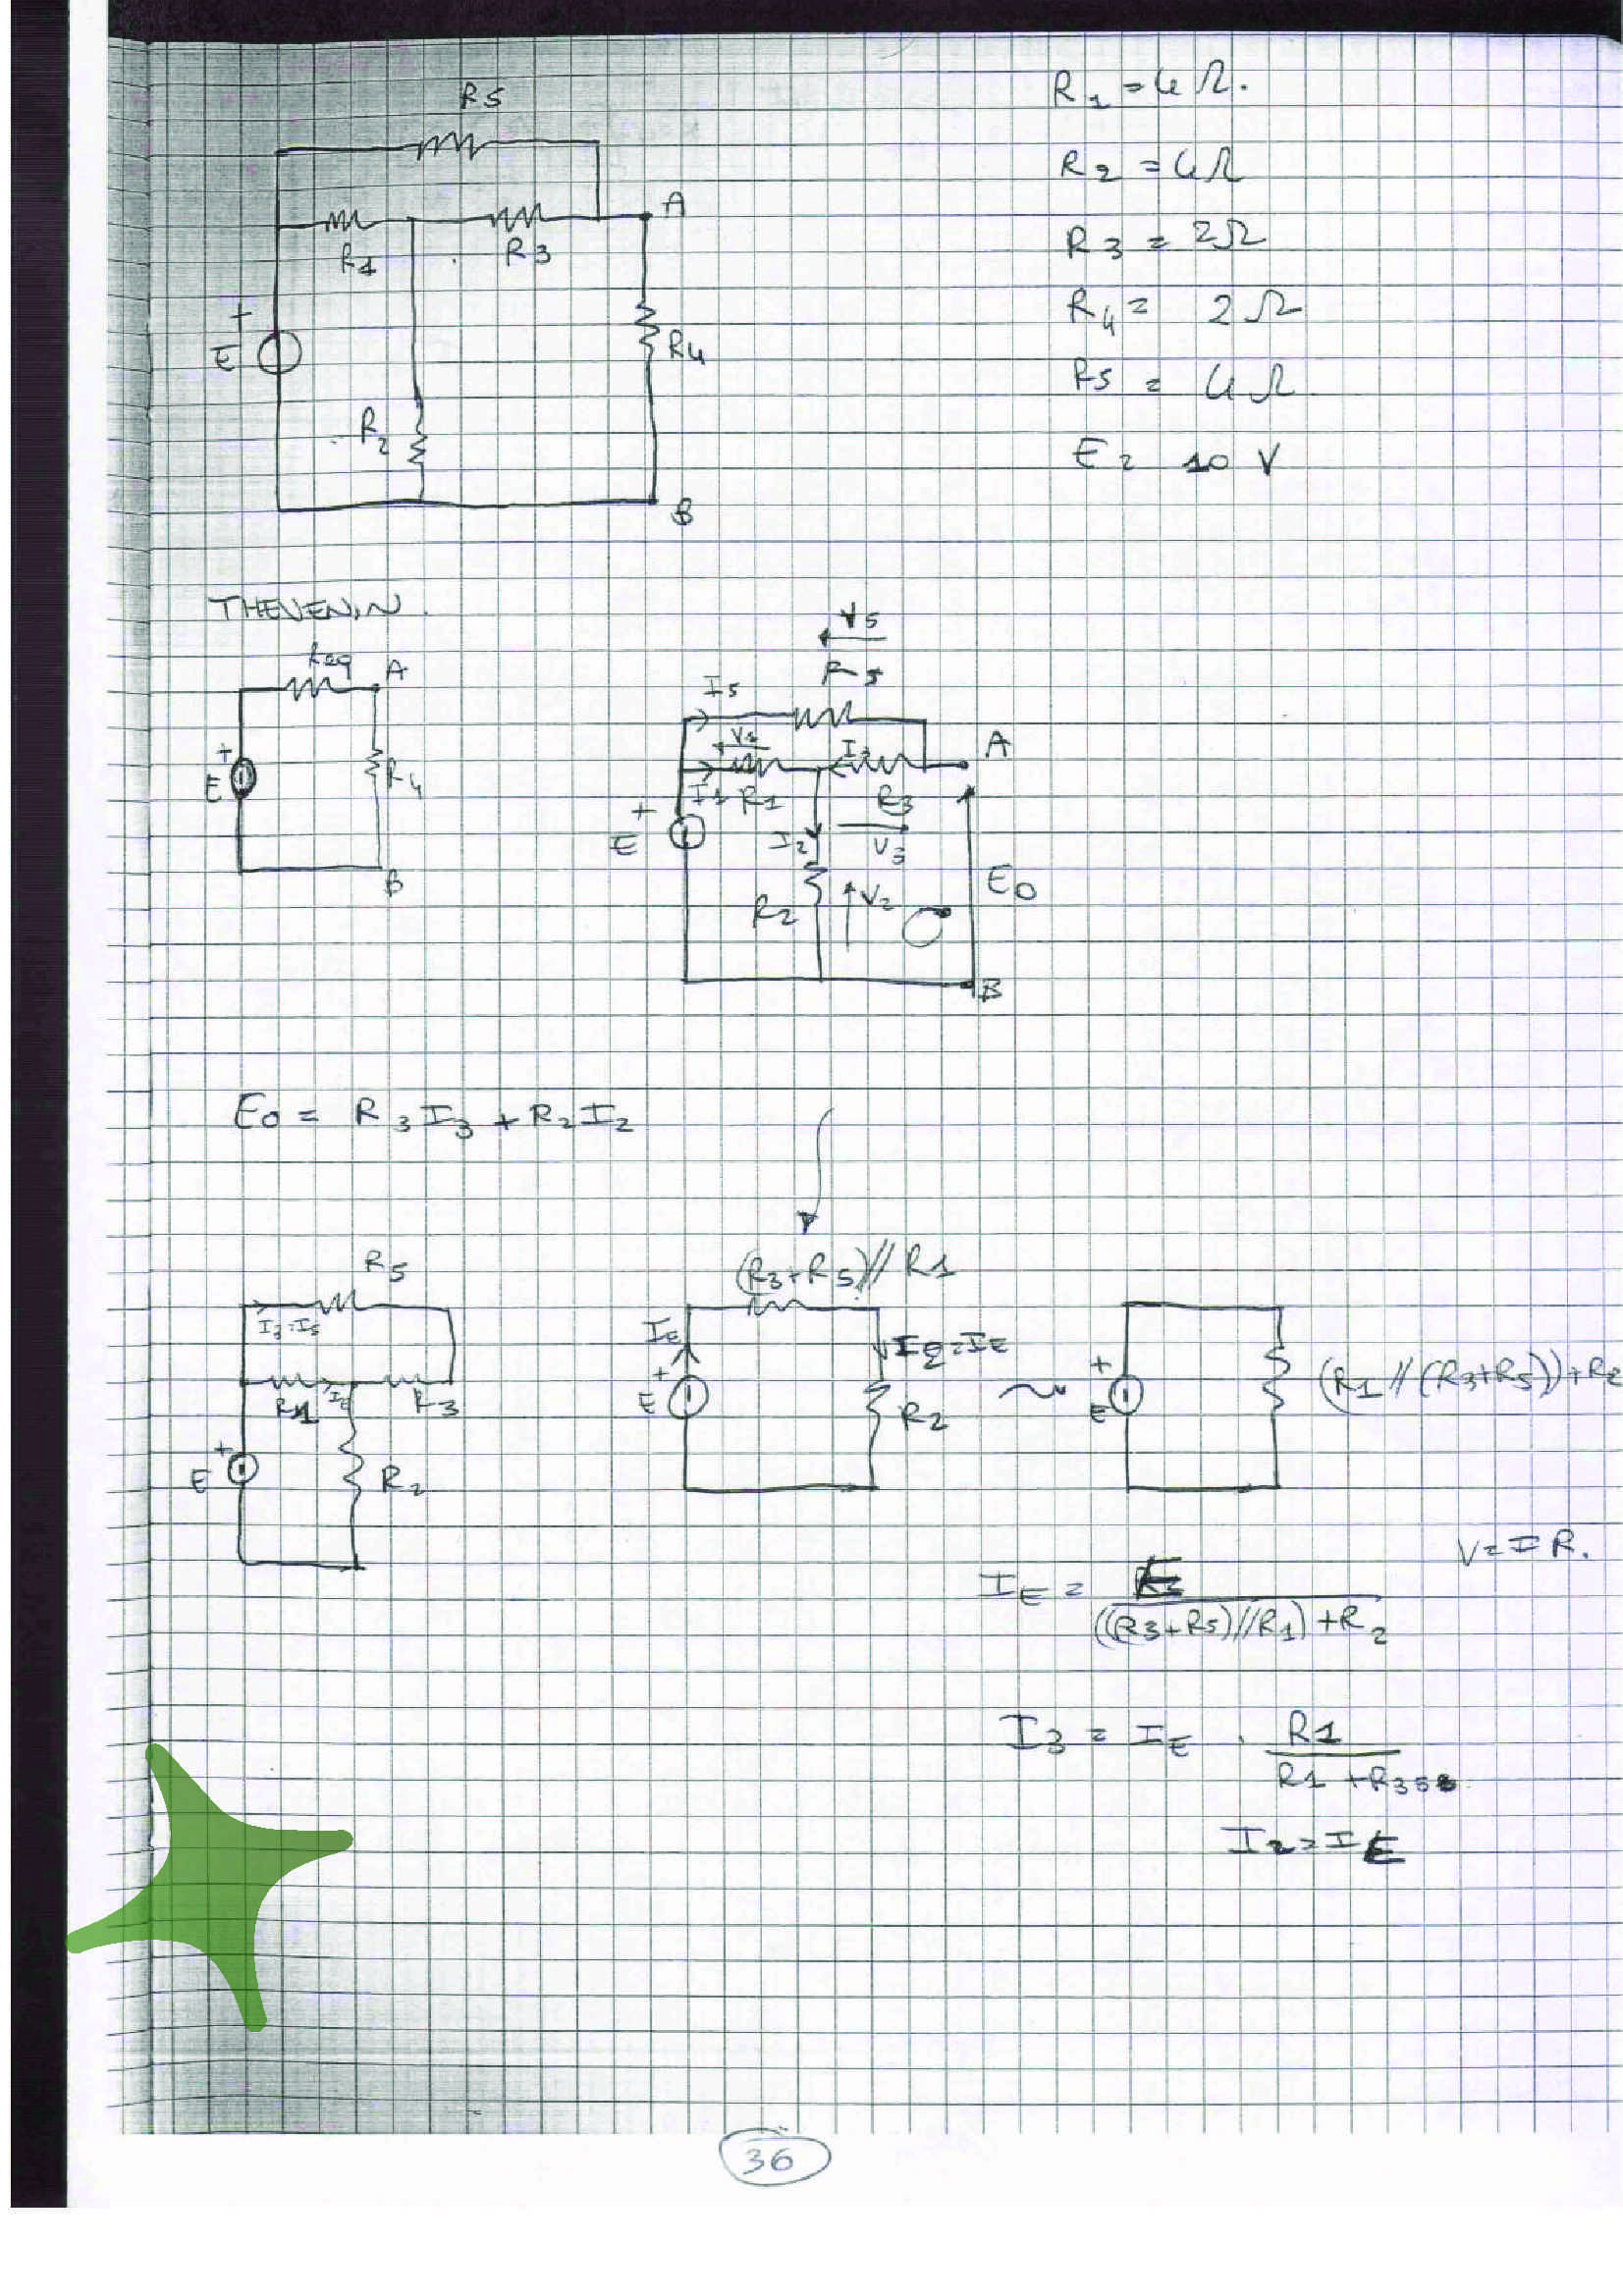 Elettrotecnica 1 - Appunti Pag. 36